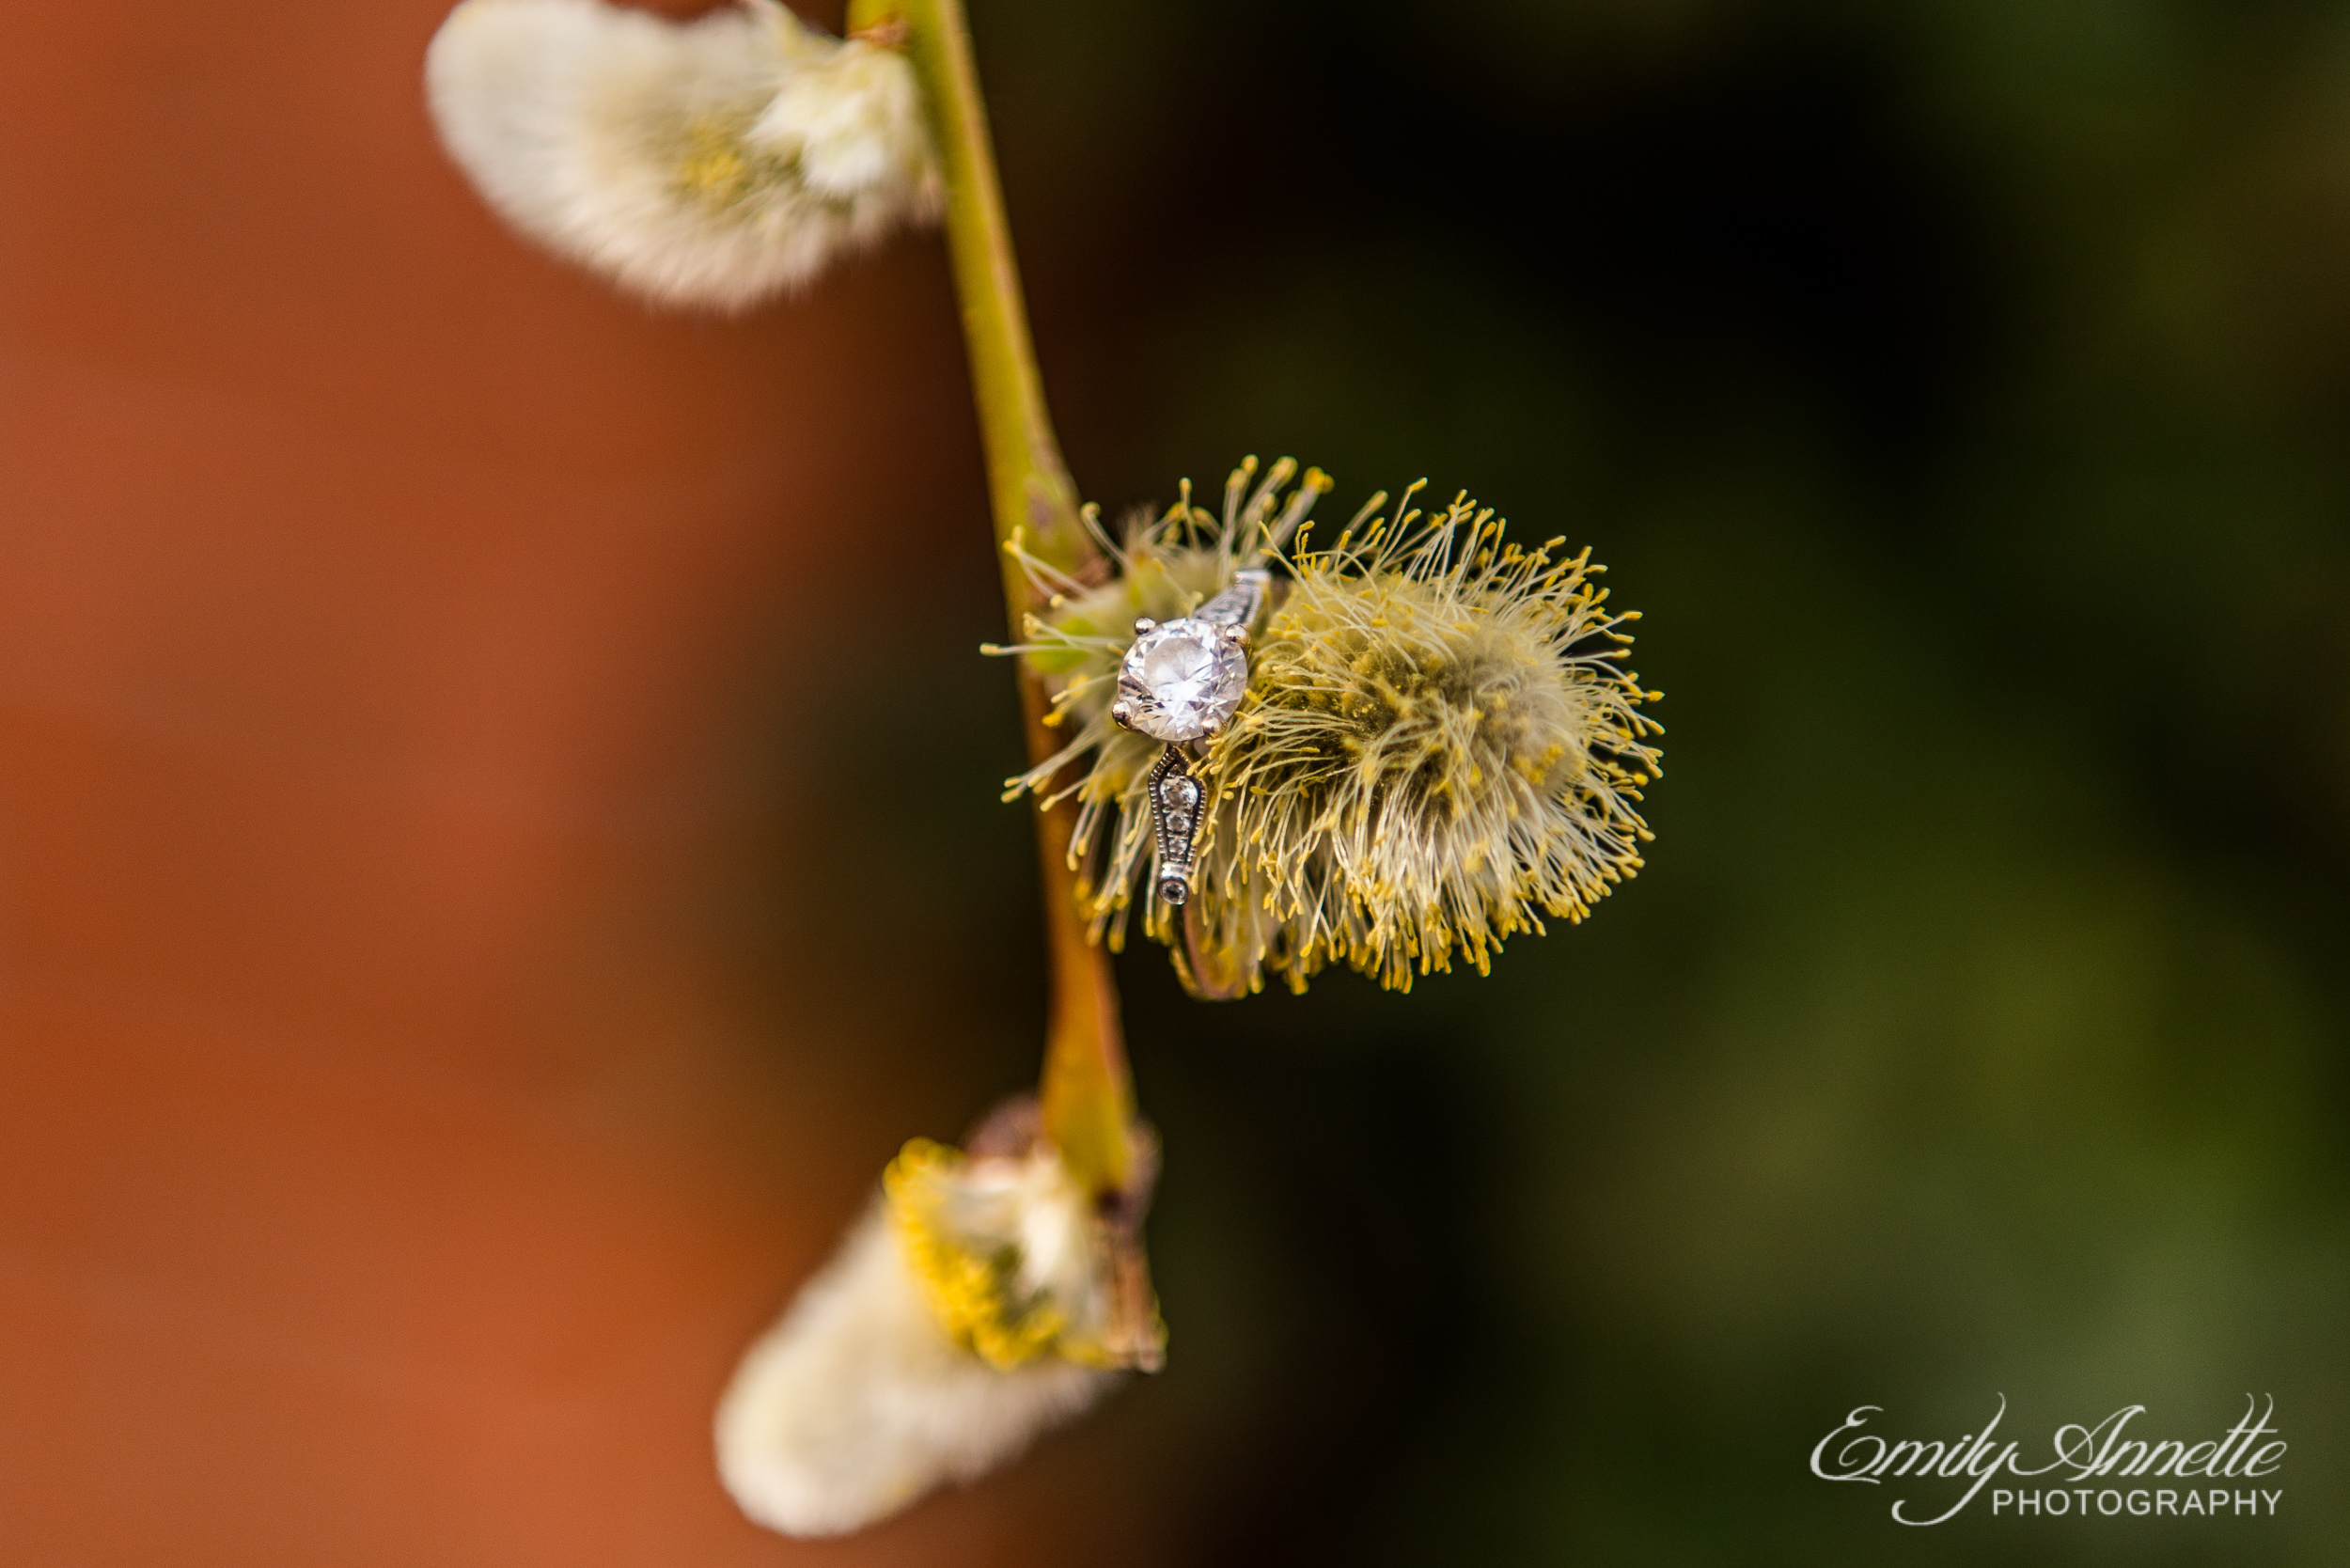 A diamond and silver engagement ring sits on fuzzy spring blooms in Old Town Alexandria, Virginia